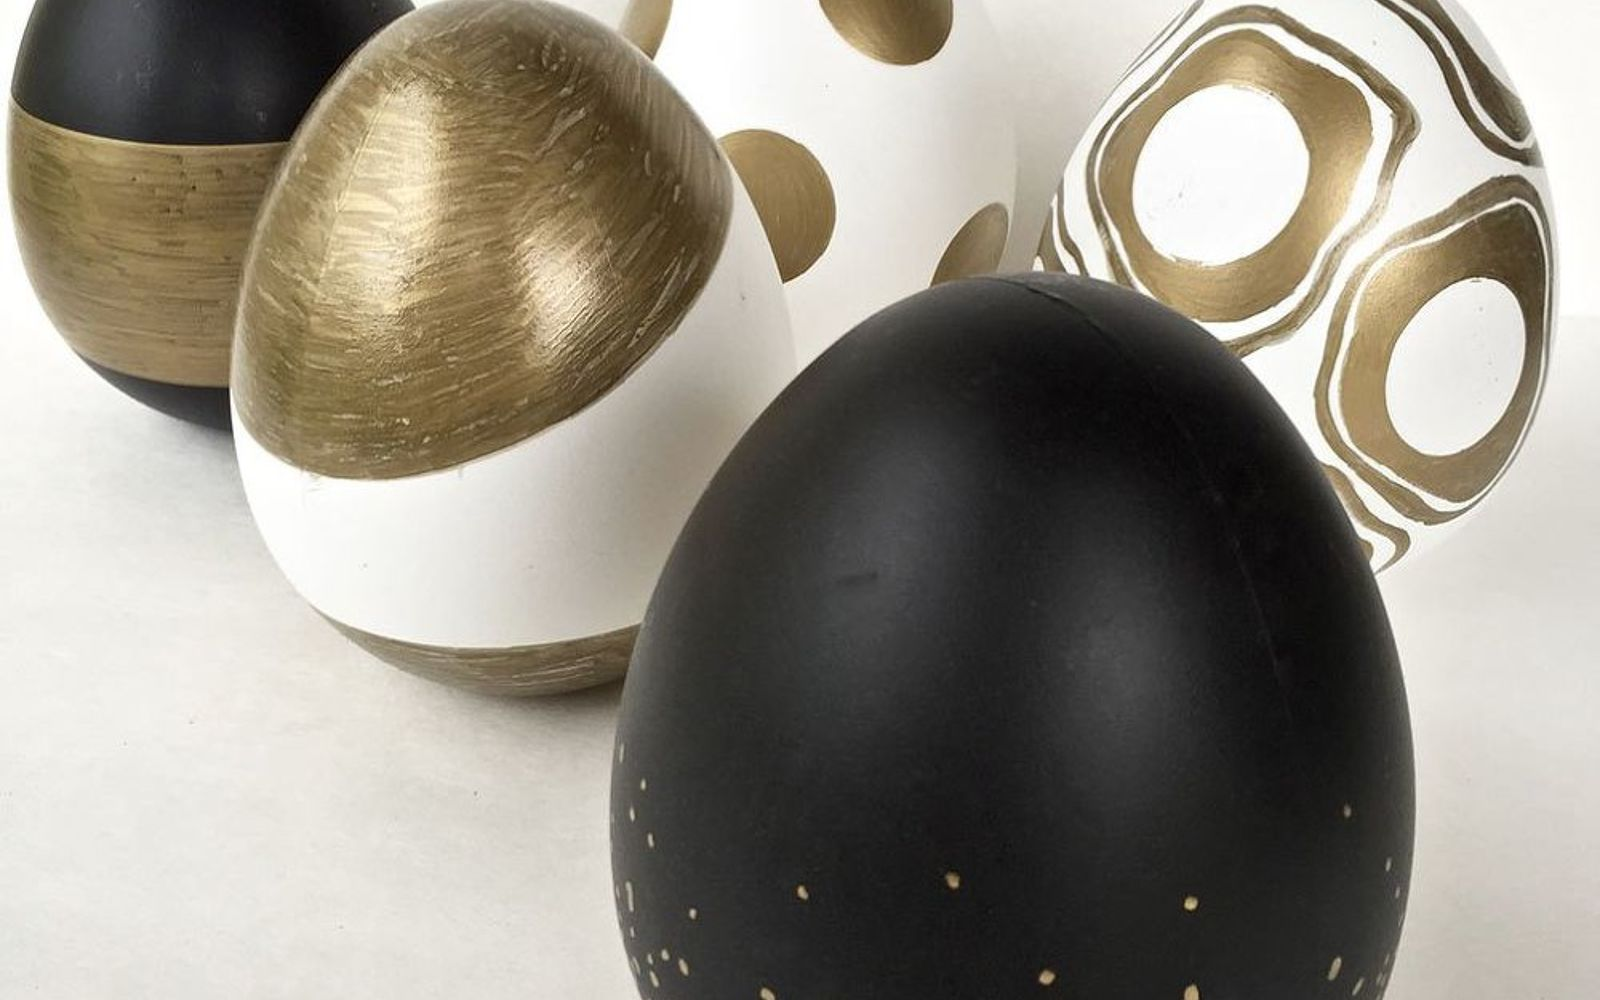 s 25 quick easter egg ideas that are just too stinkin cute, crafts, easter decorations, Add chic details with gold Sharpies